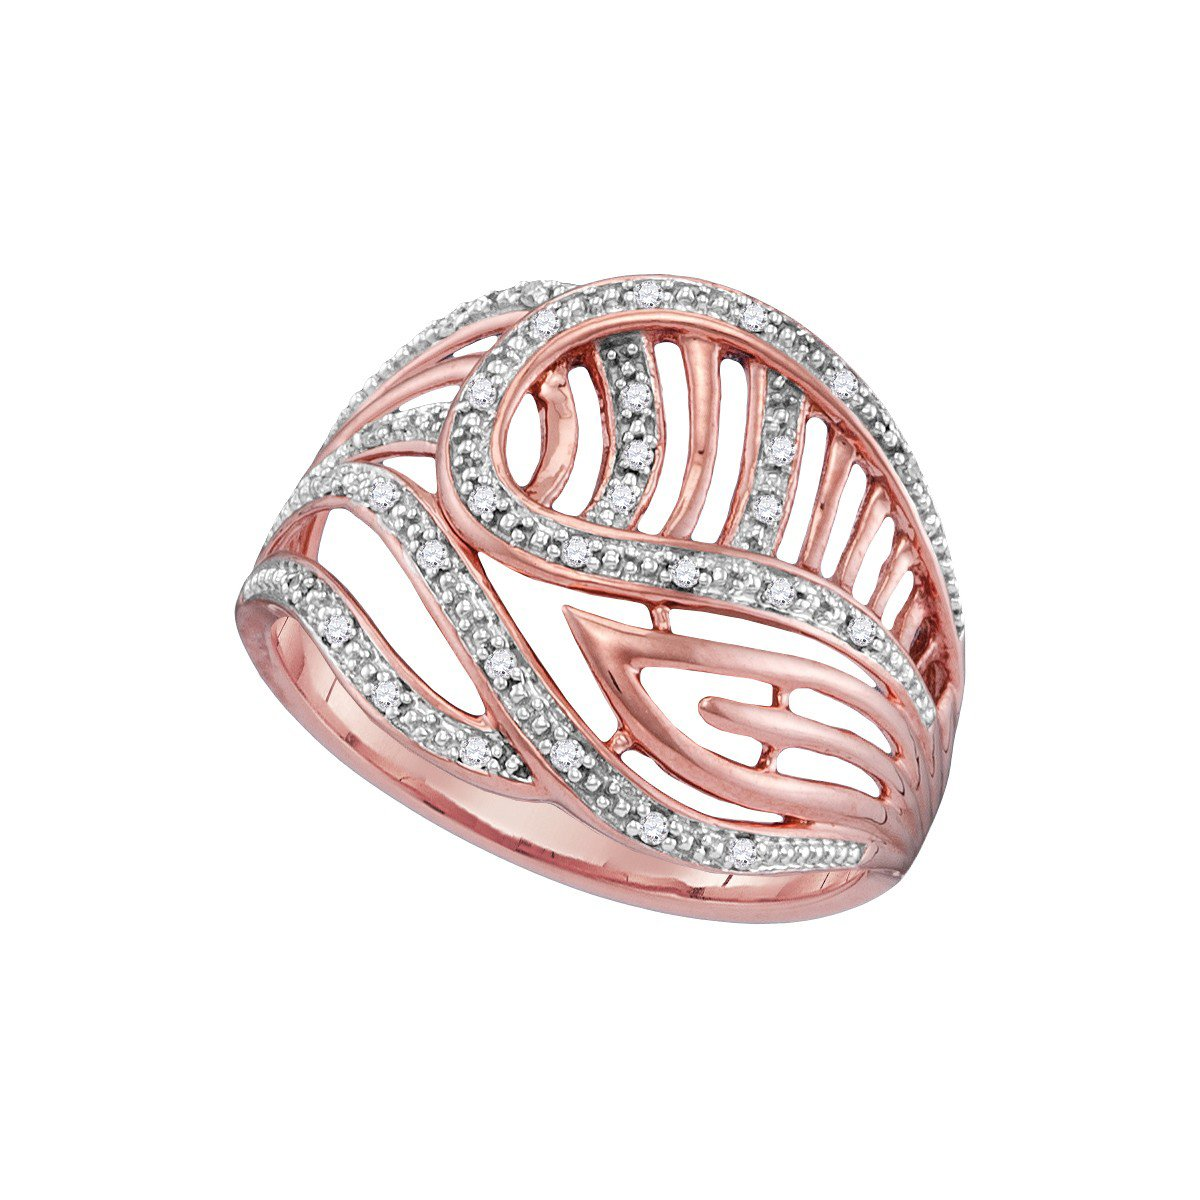 10k Rose Gold Round Diamond Open-Work Cockail Ring (1/10 Cttw) Sonia Jewels 4815341